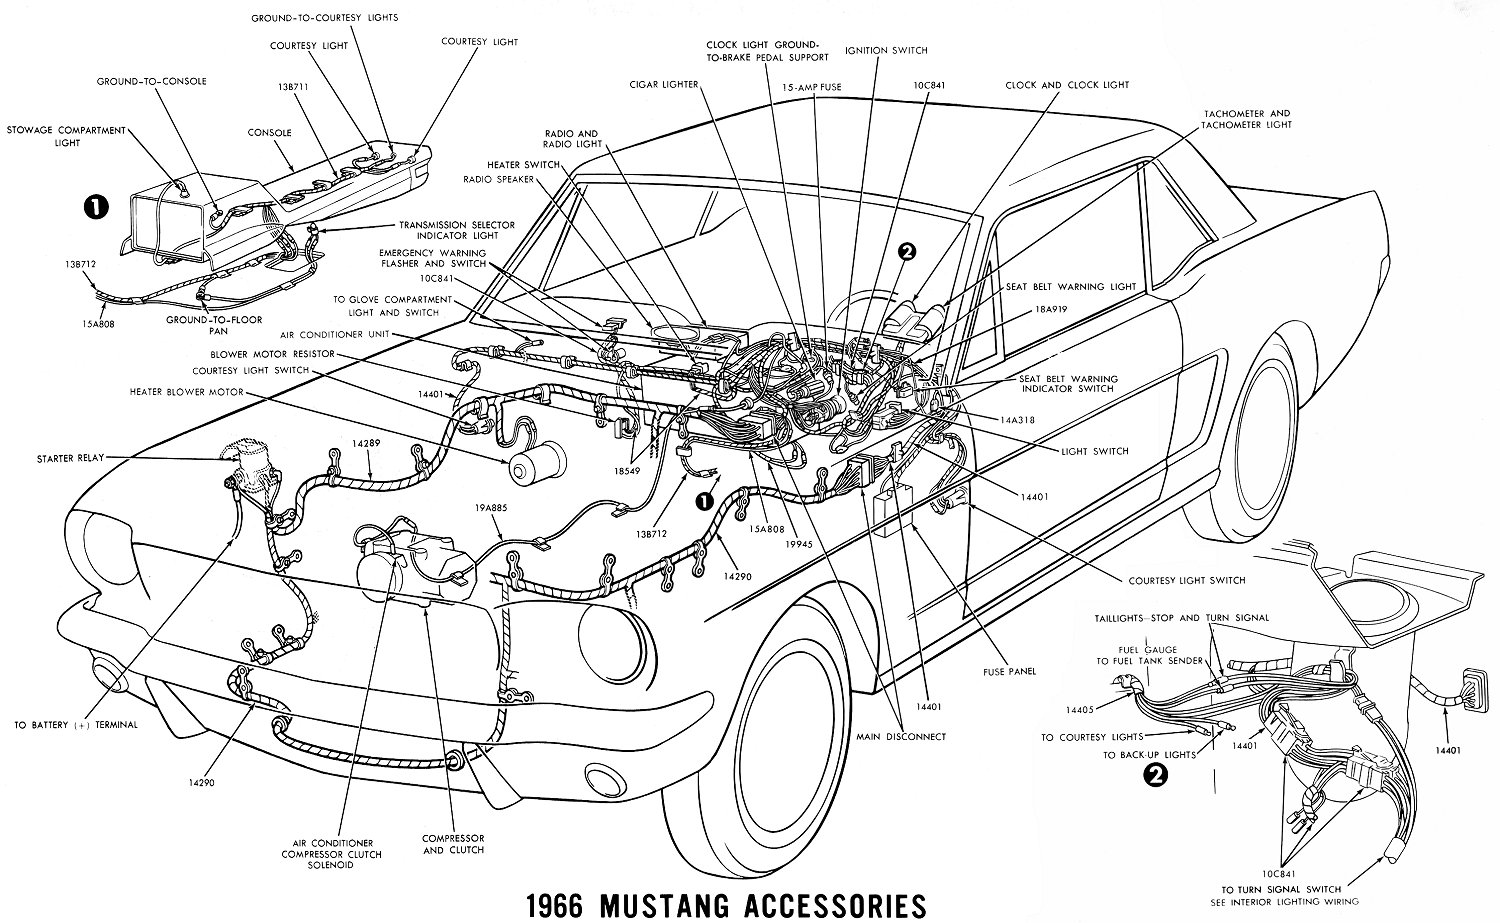 Vintage Mustang Wiring Diagrams Basic Click For Details Diagram With Accessory And 66 Accessories Schematic